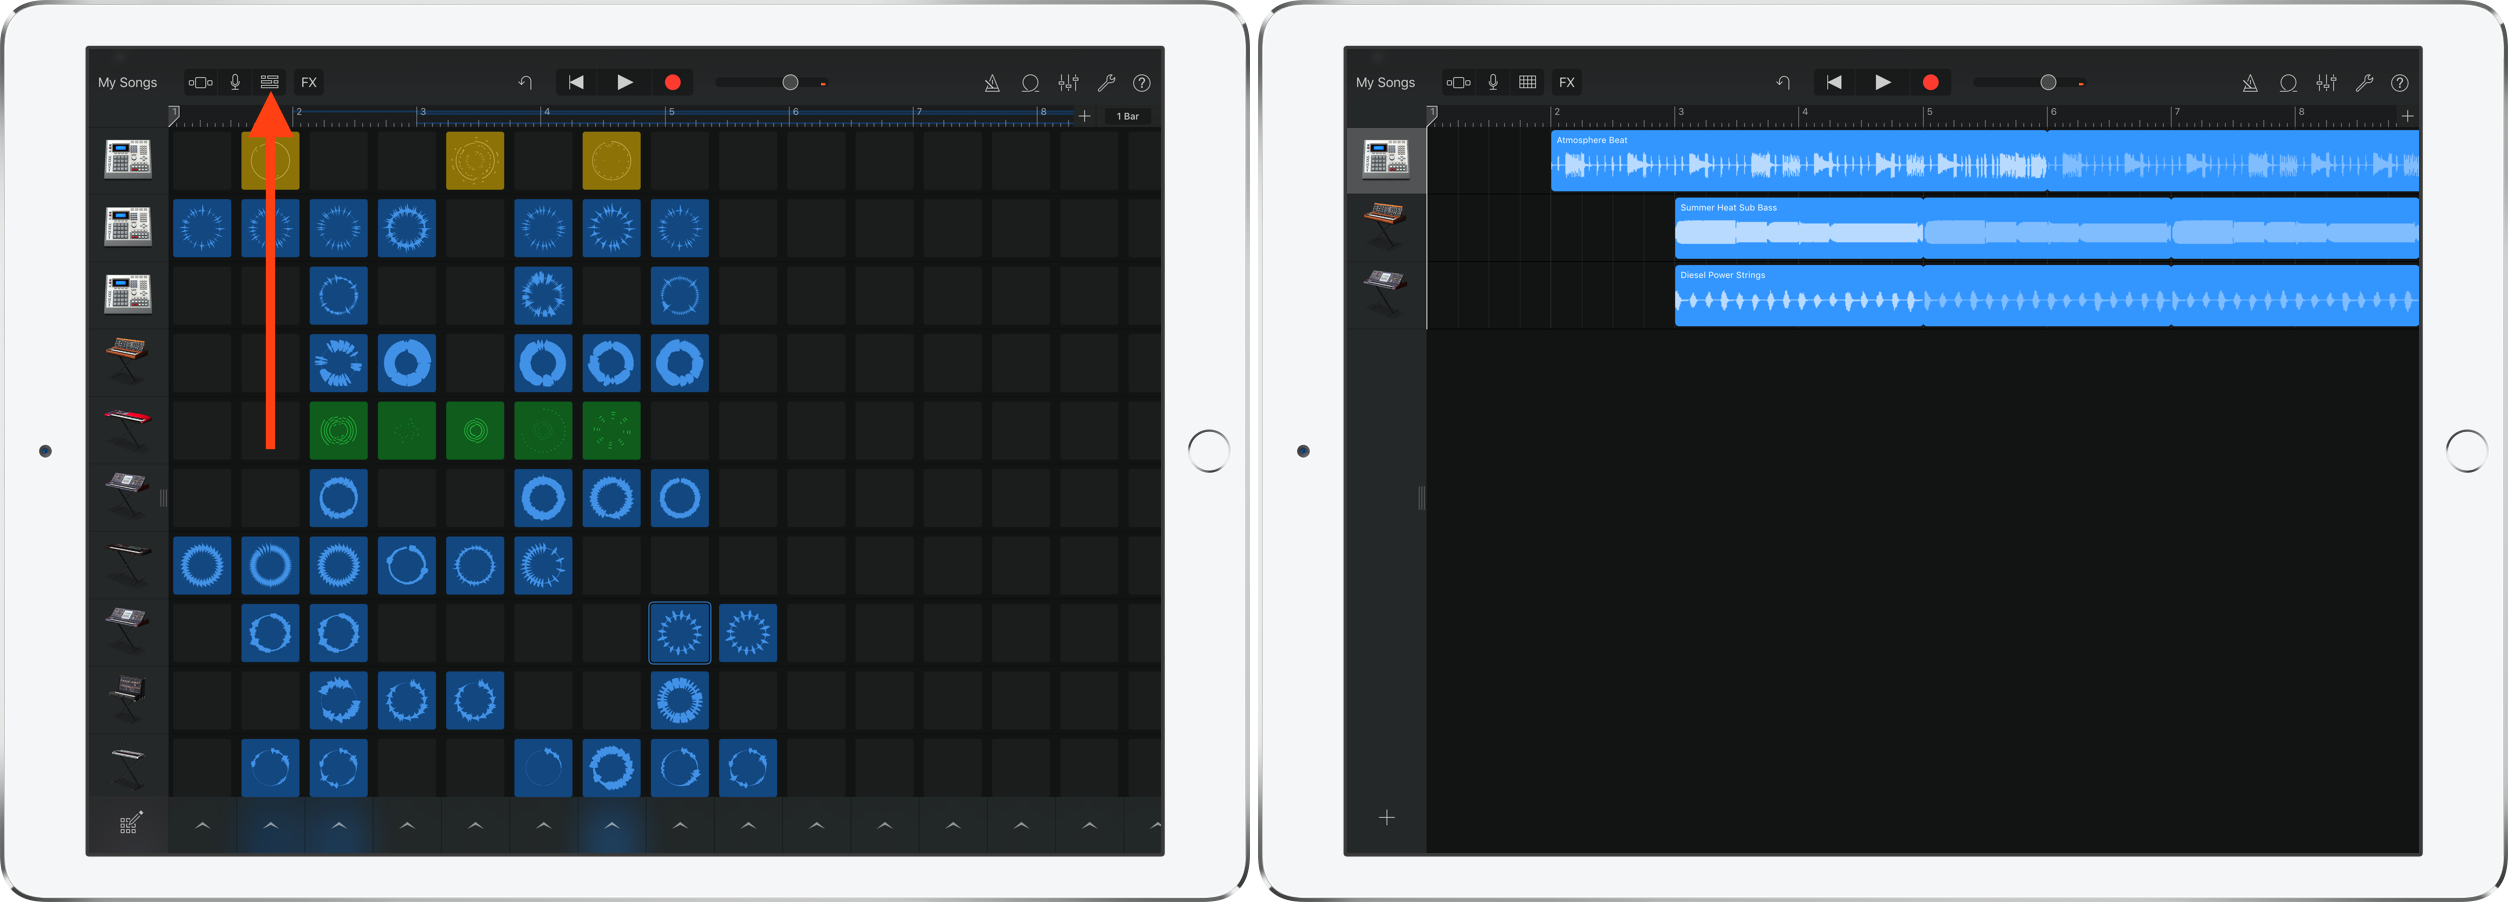 How to view the song waveform layout GarageBand